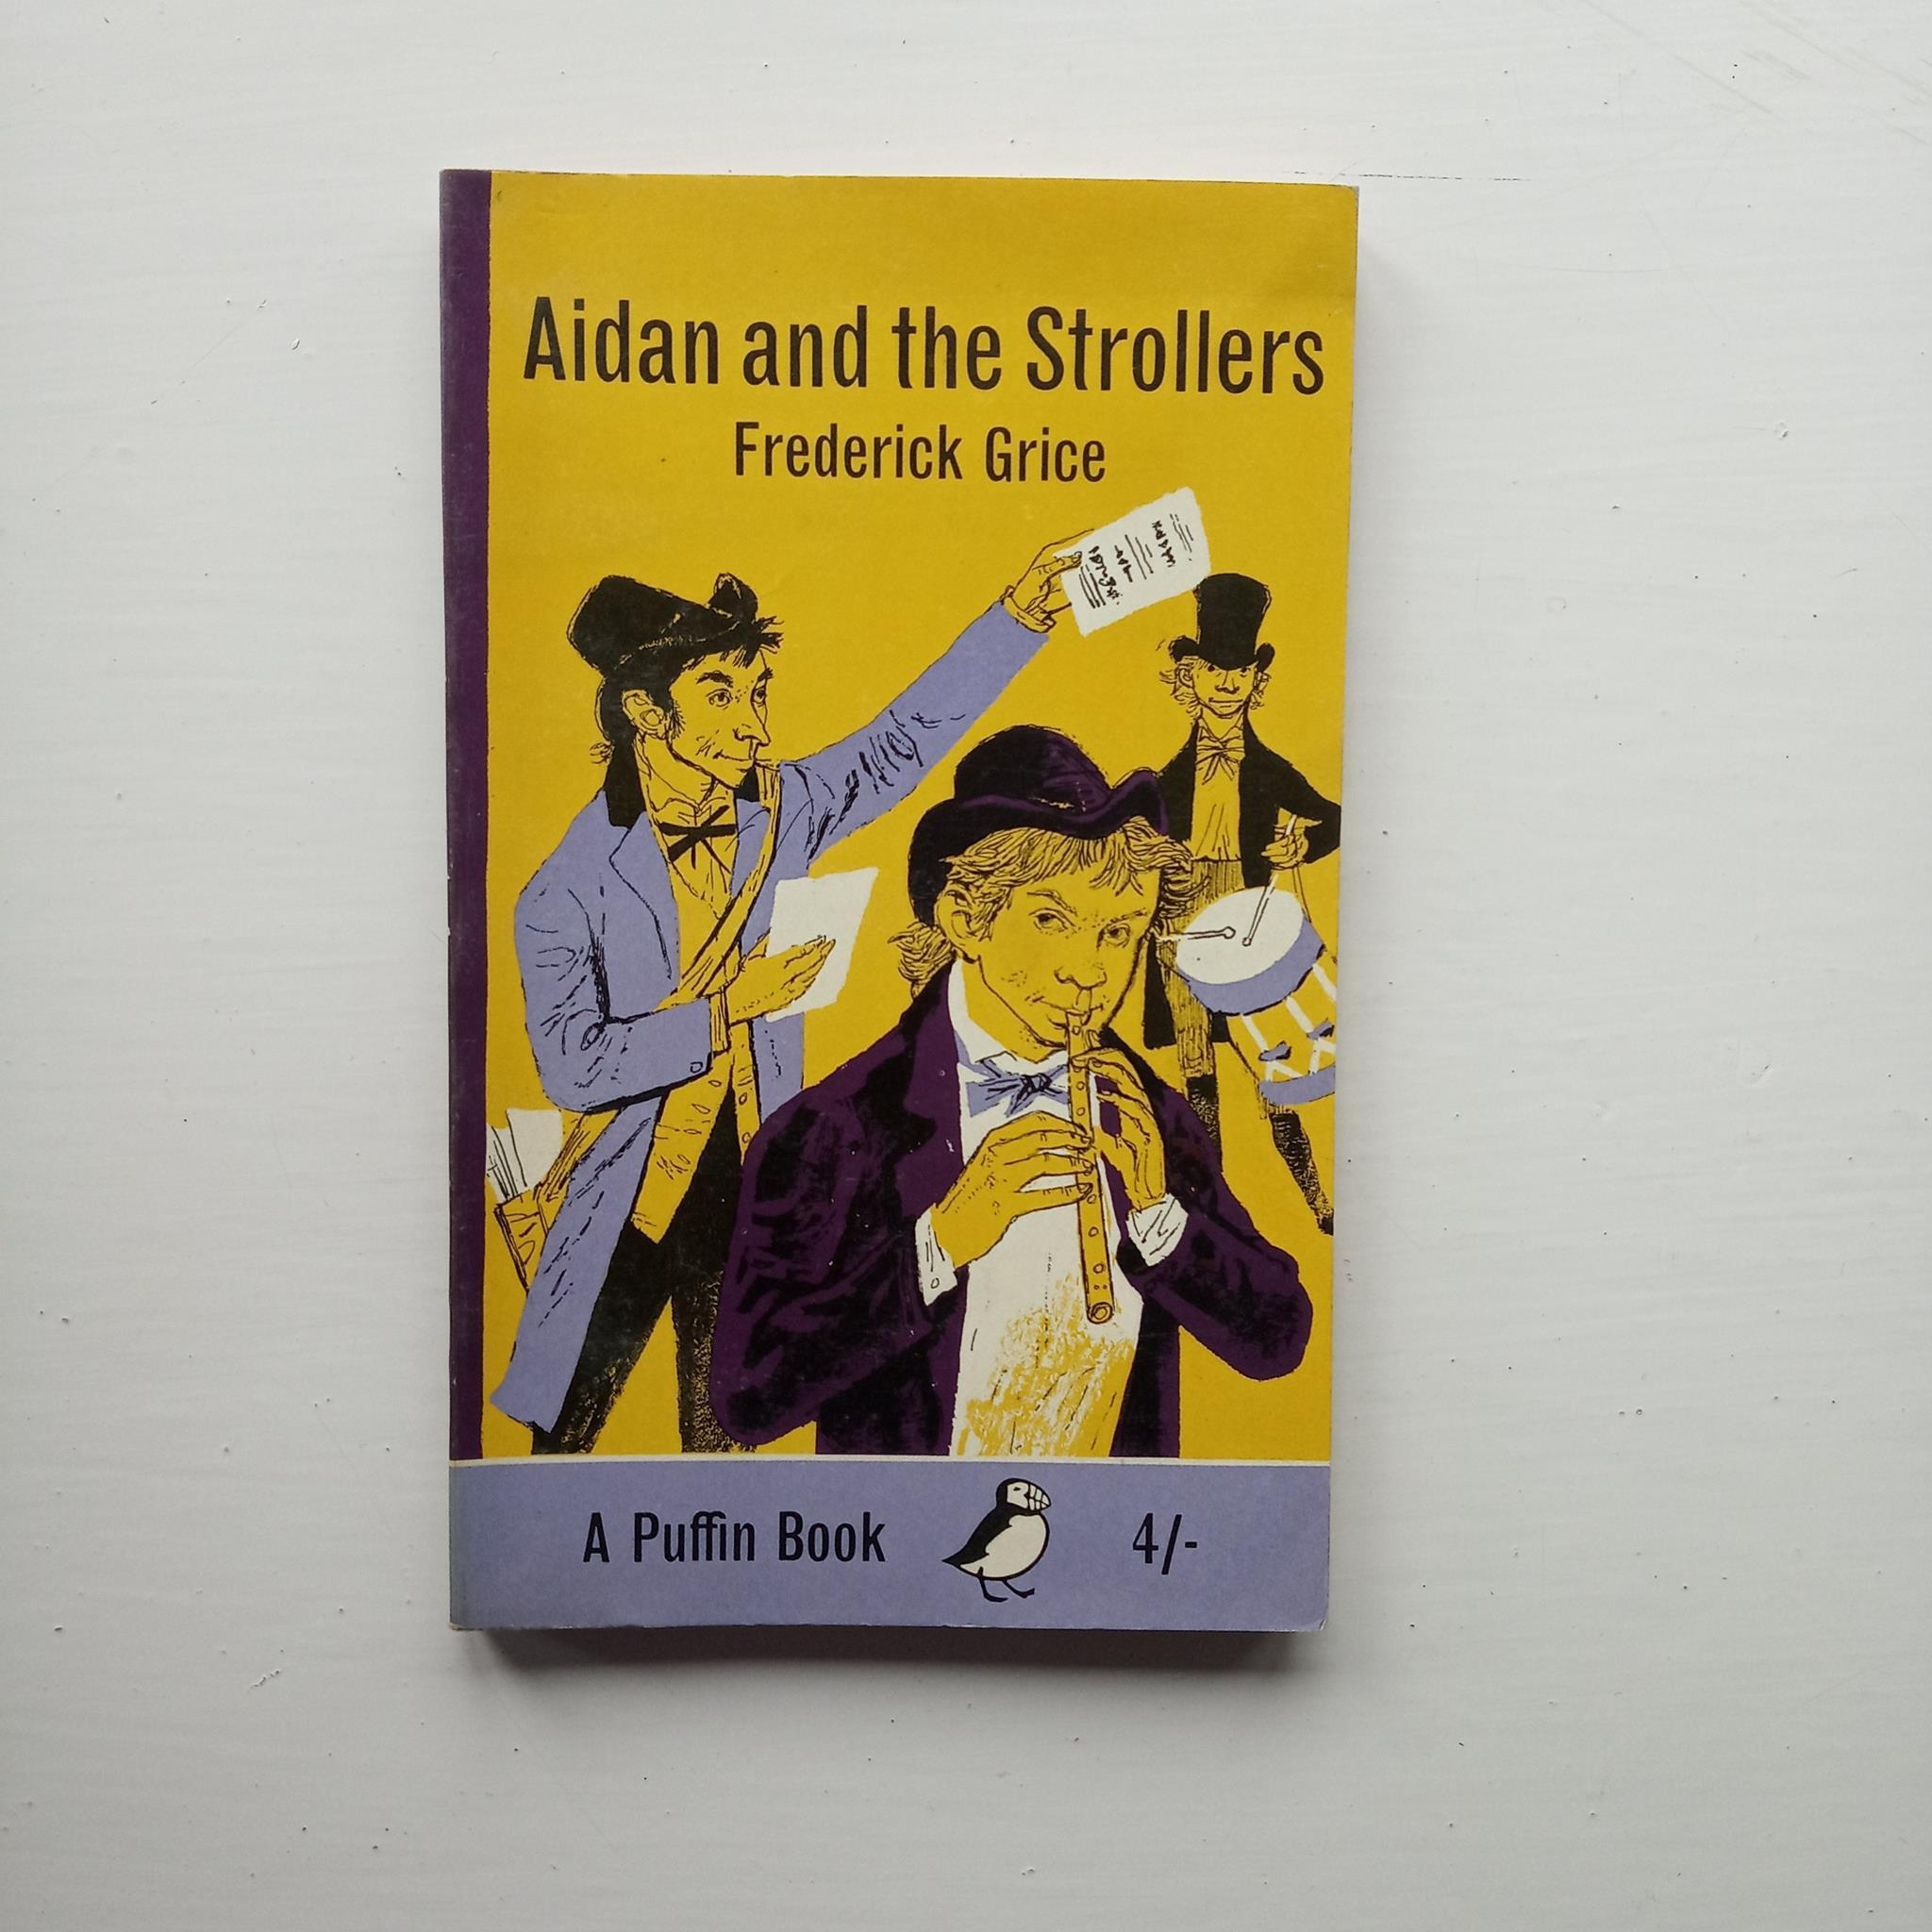 Aidan and the Strollers by Frederick Grice